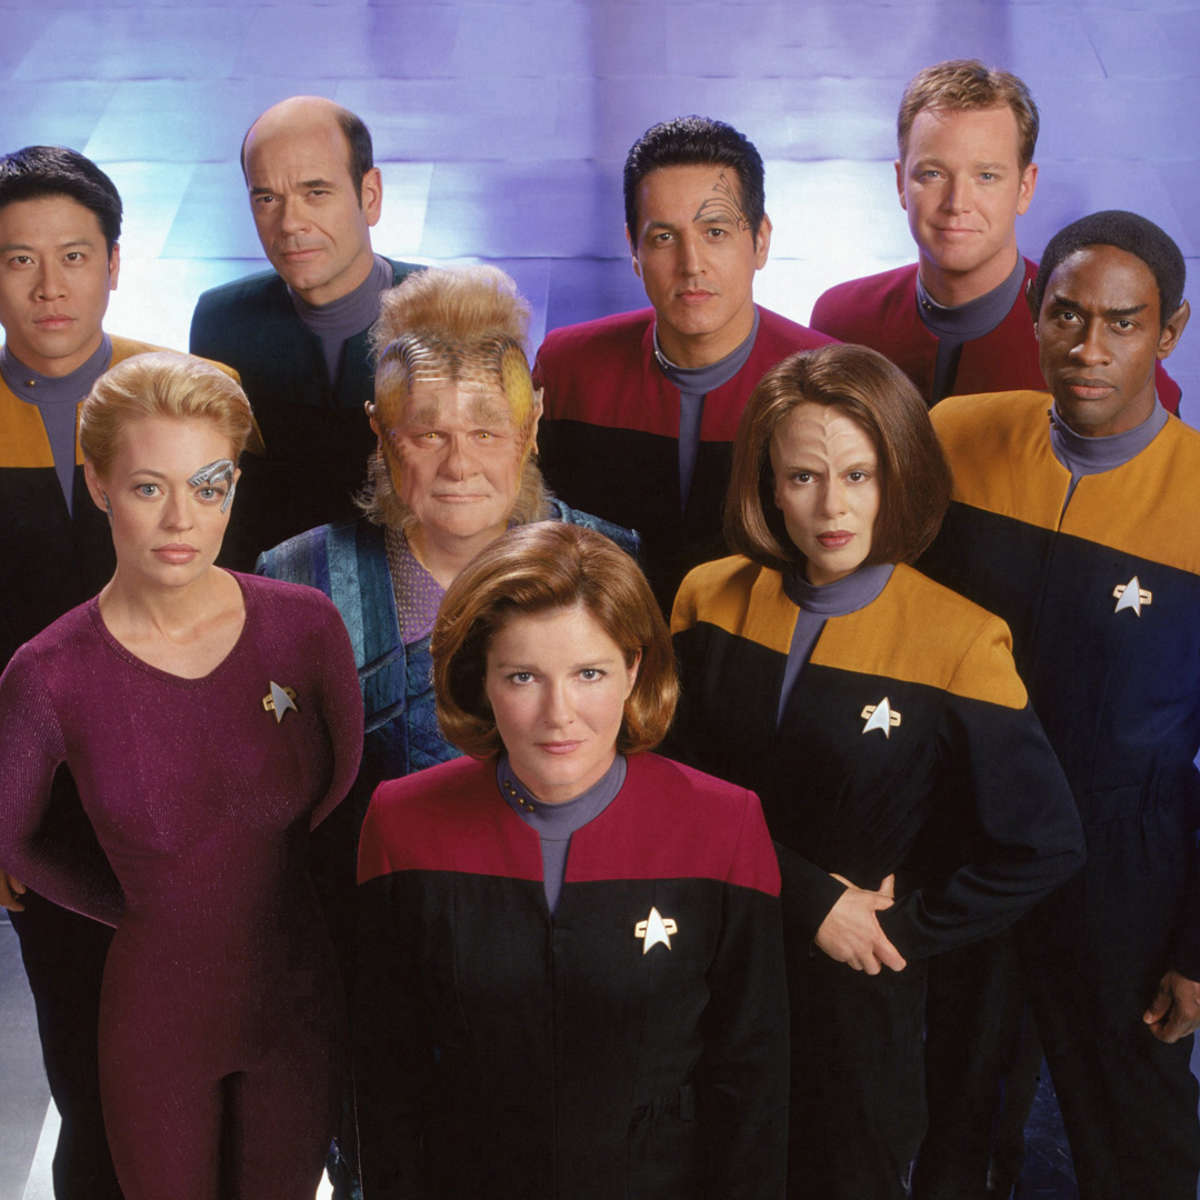 cast-of-star-trek-voyager-5.jpeg